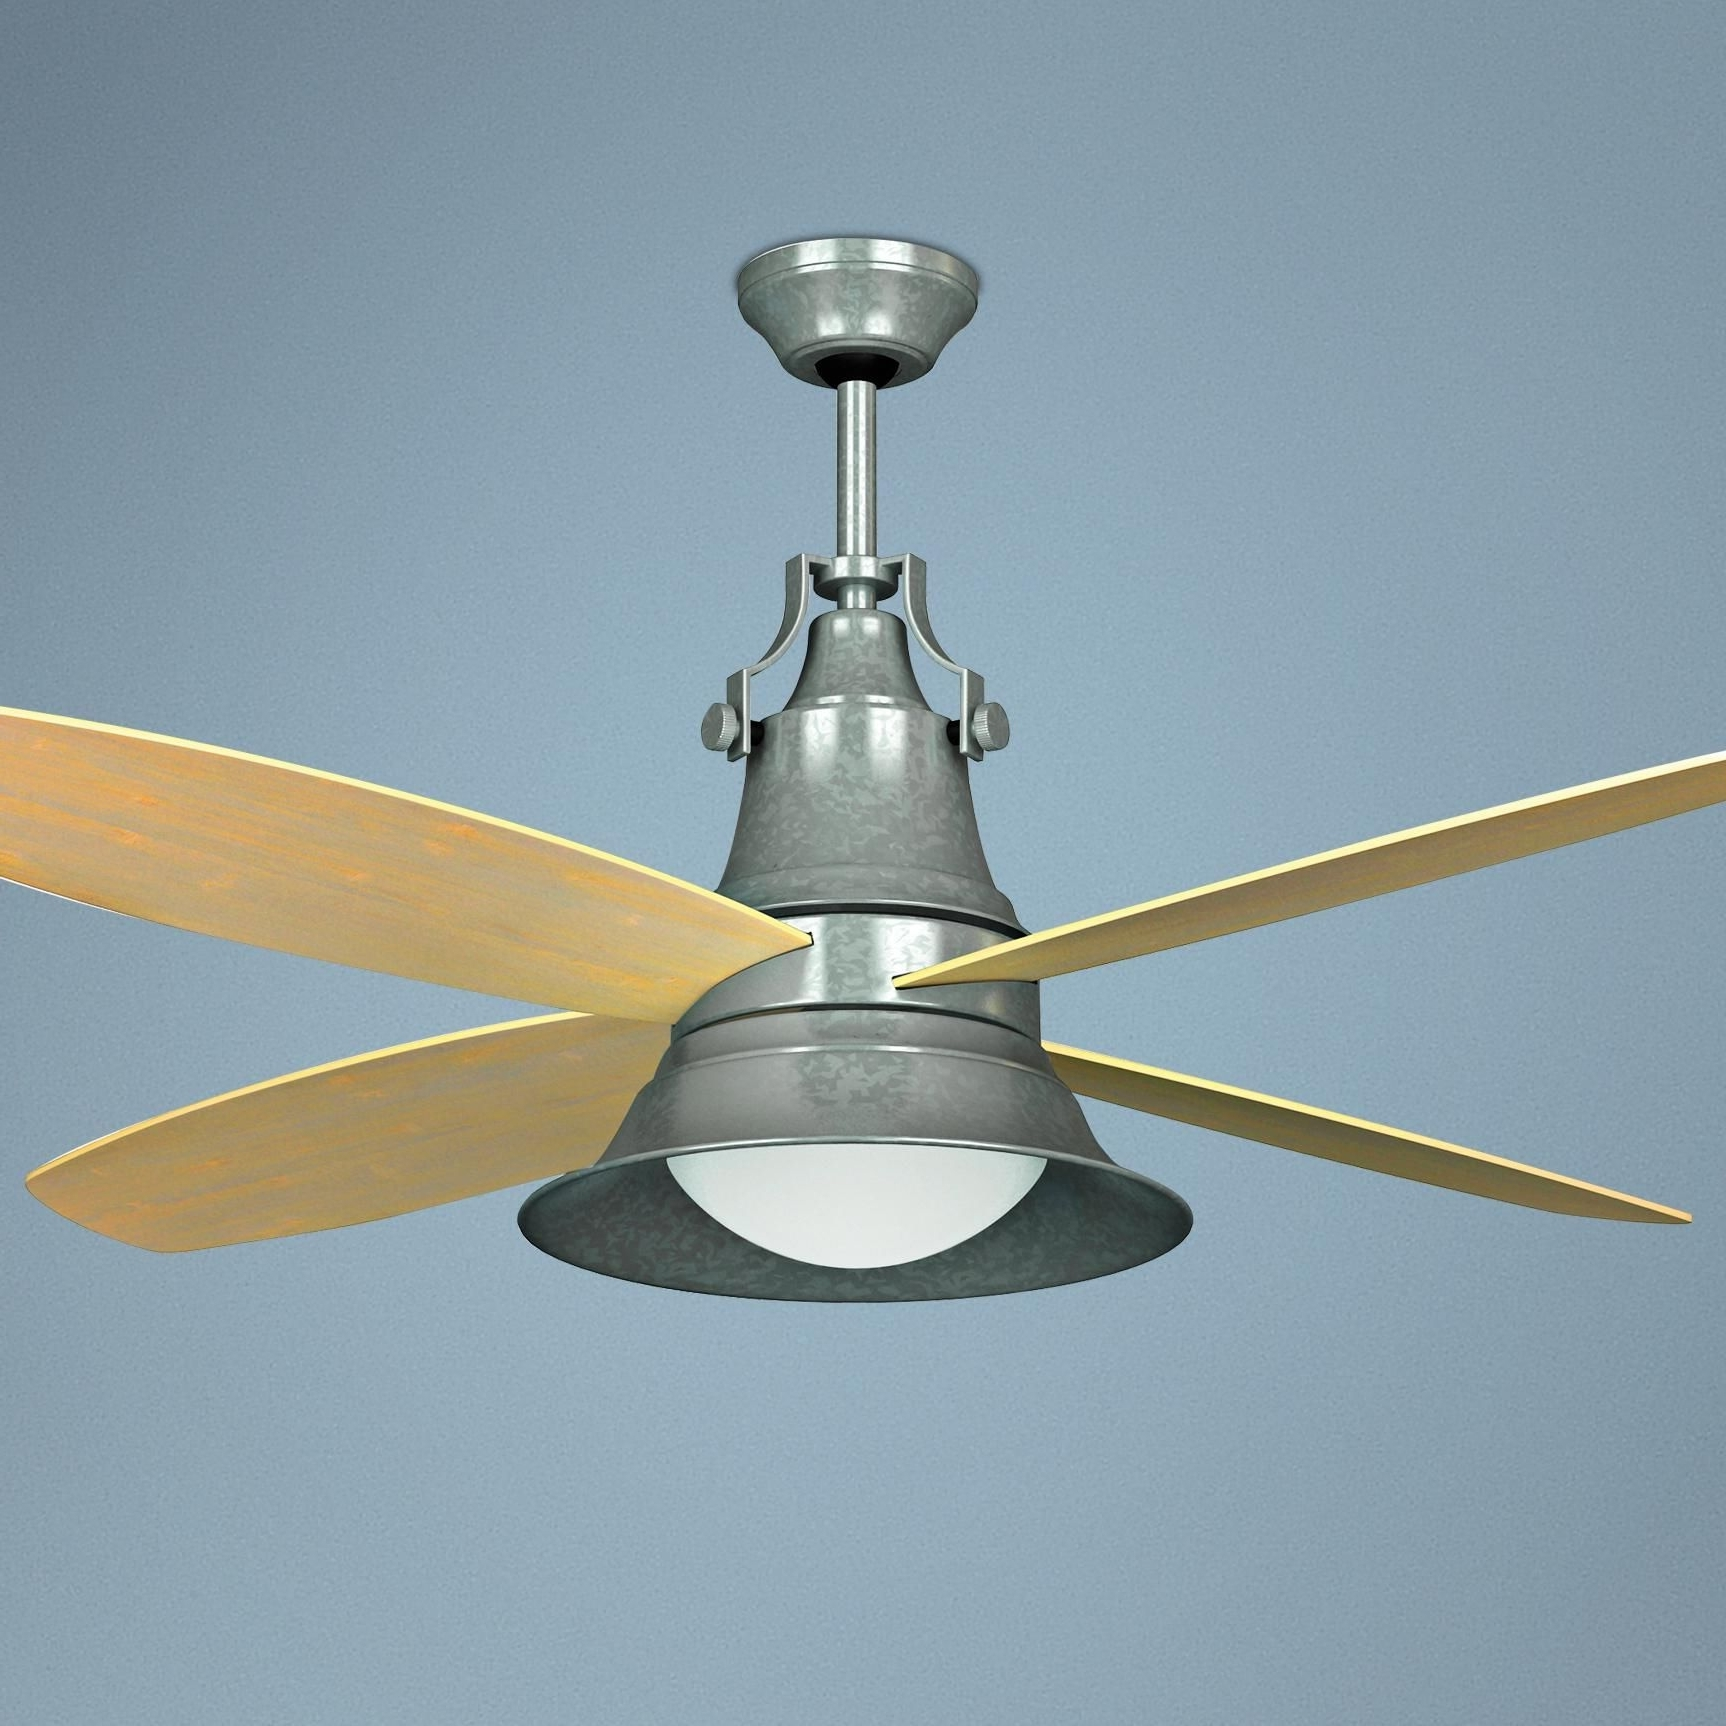 Lampsplus Within Fashionable Galvanized Outdoor Ceiling Fans With Light (View 9 of 20)